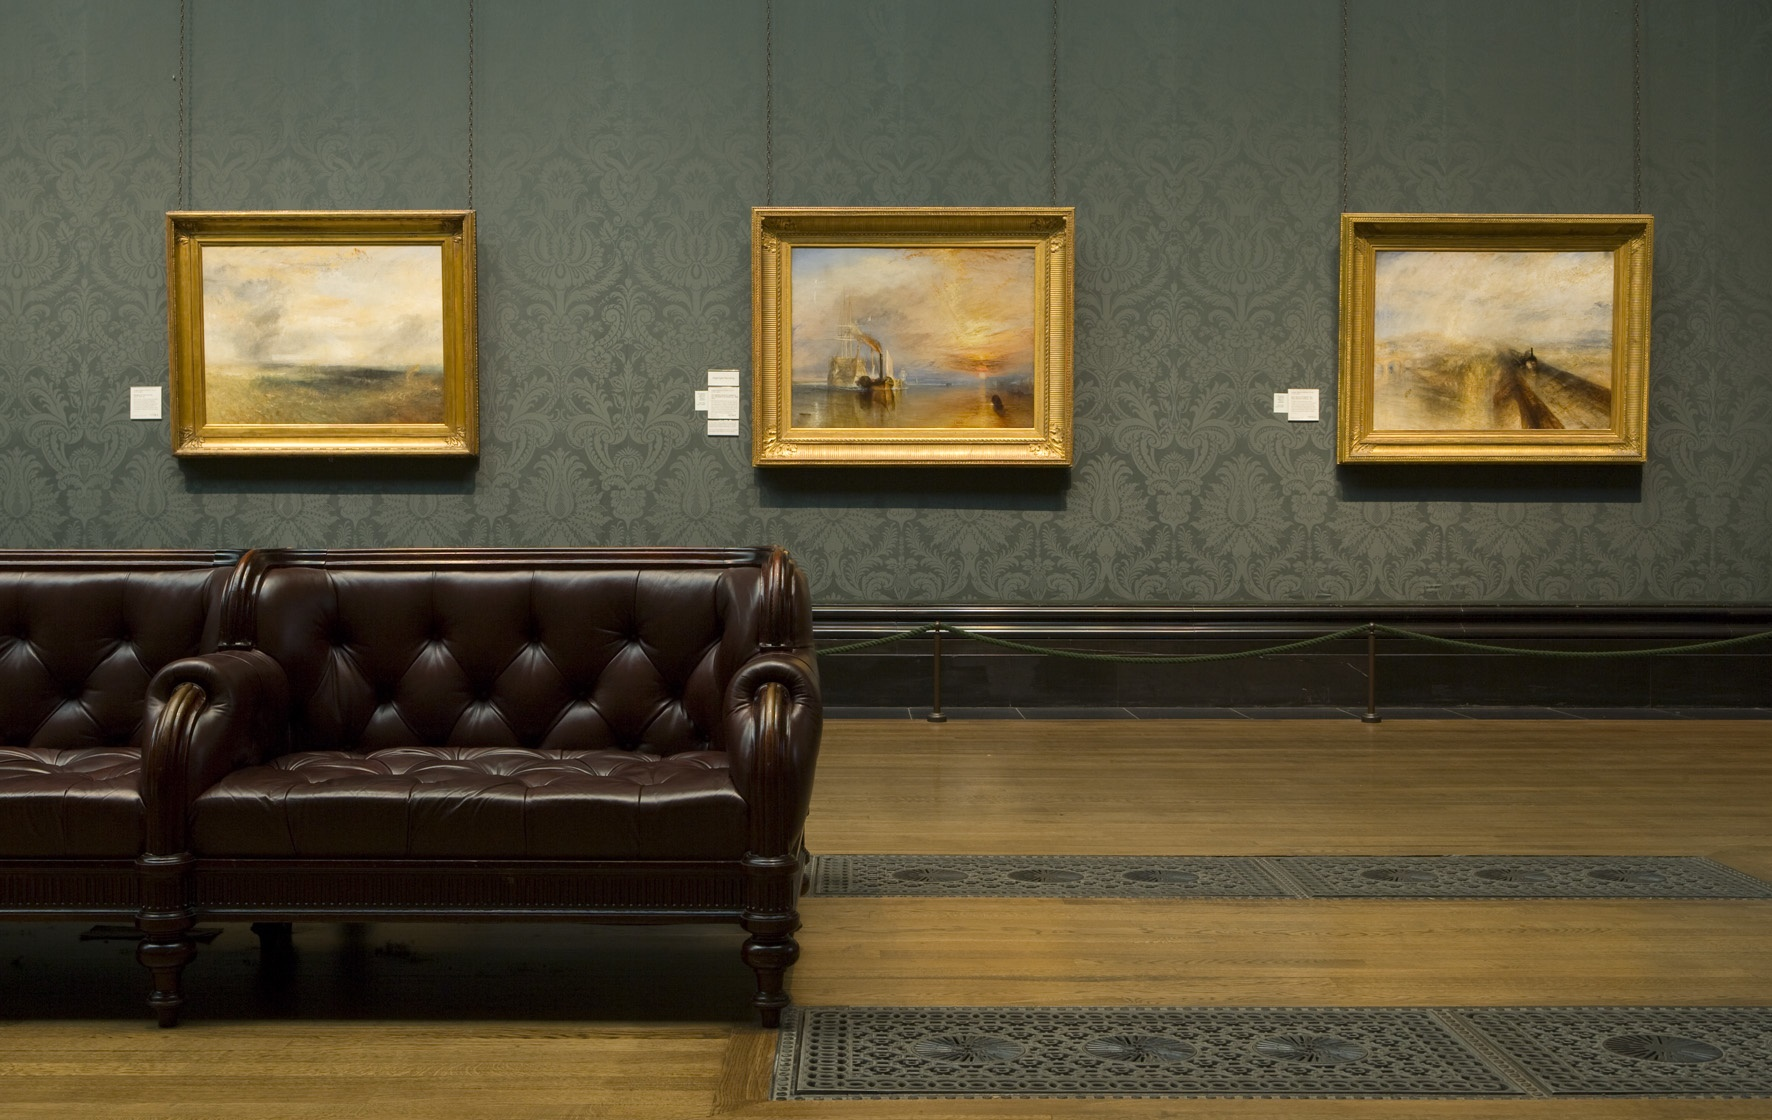 AfL April Seminar - The Turner Bequest at the National Gallery. Photograph copyright of The National Gallery, London